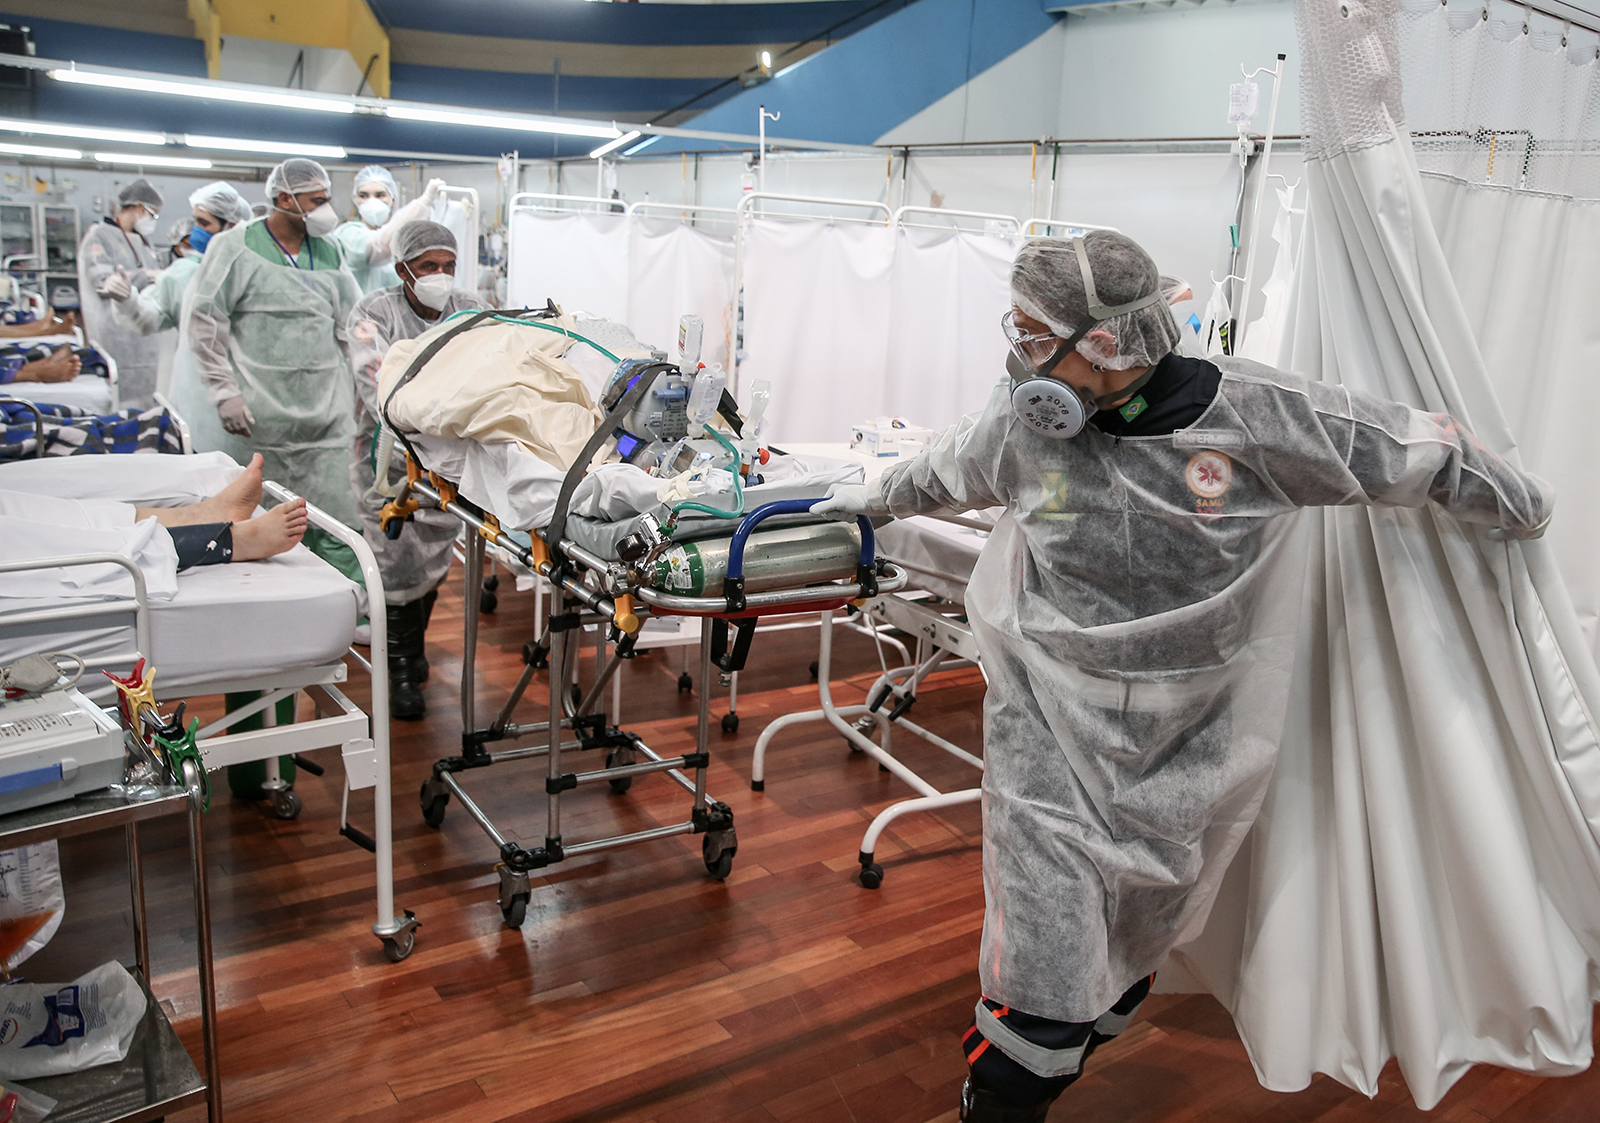 Medical staff members transport a patient on a stretcher at the Pedro DellAntonia Sports Complex field hospital in Santo Andre, Brazil, on March 11.